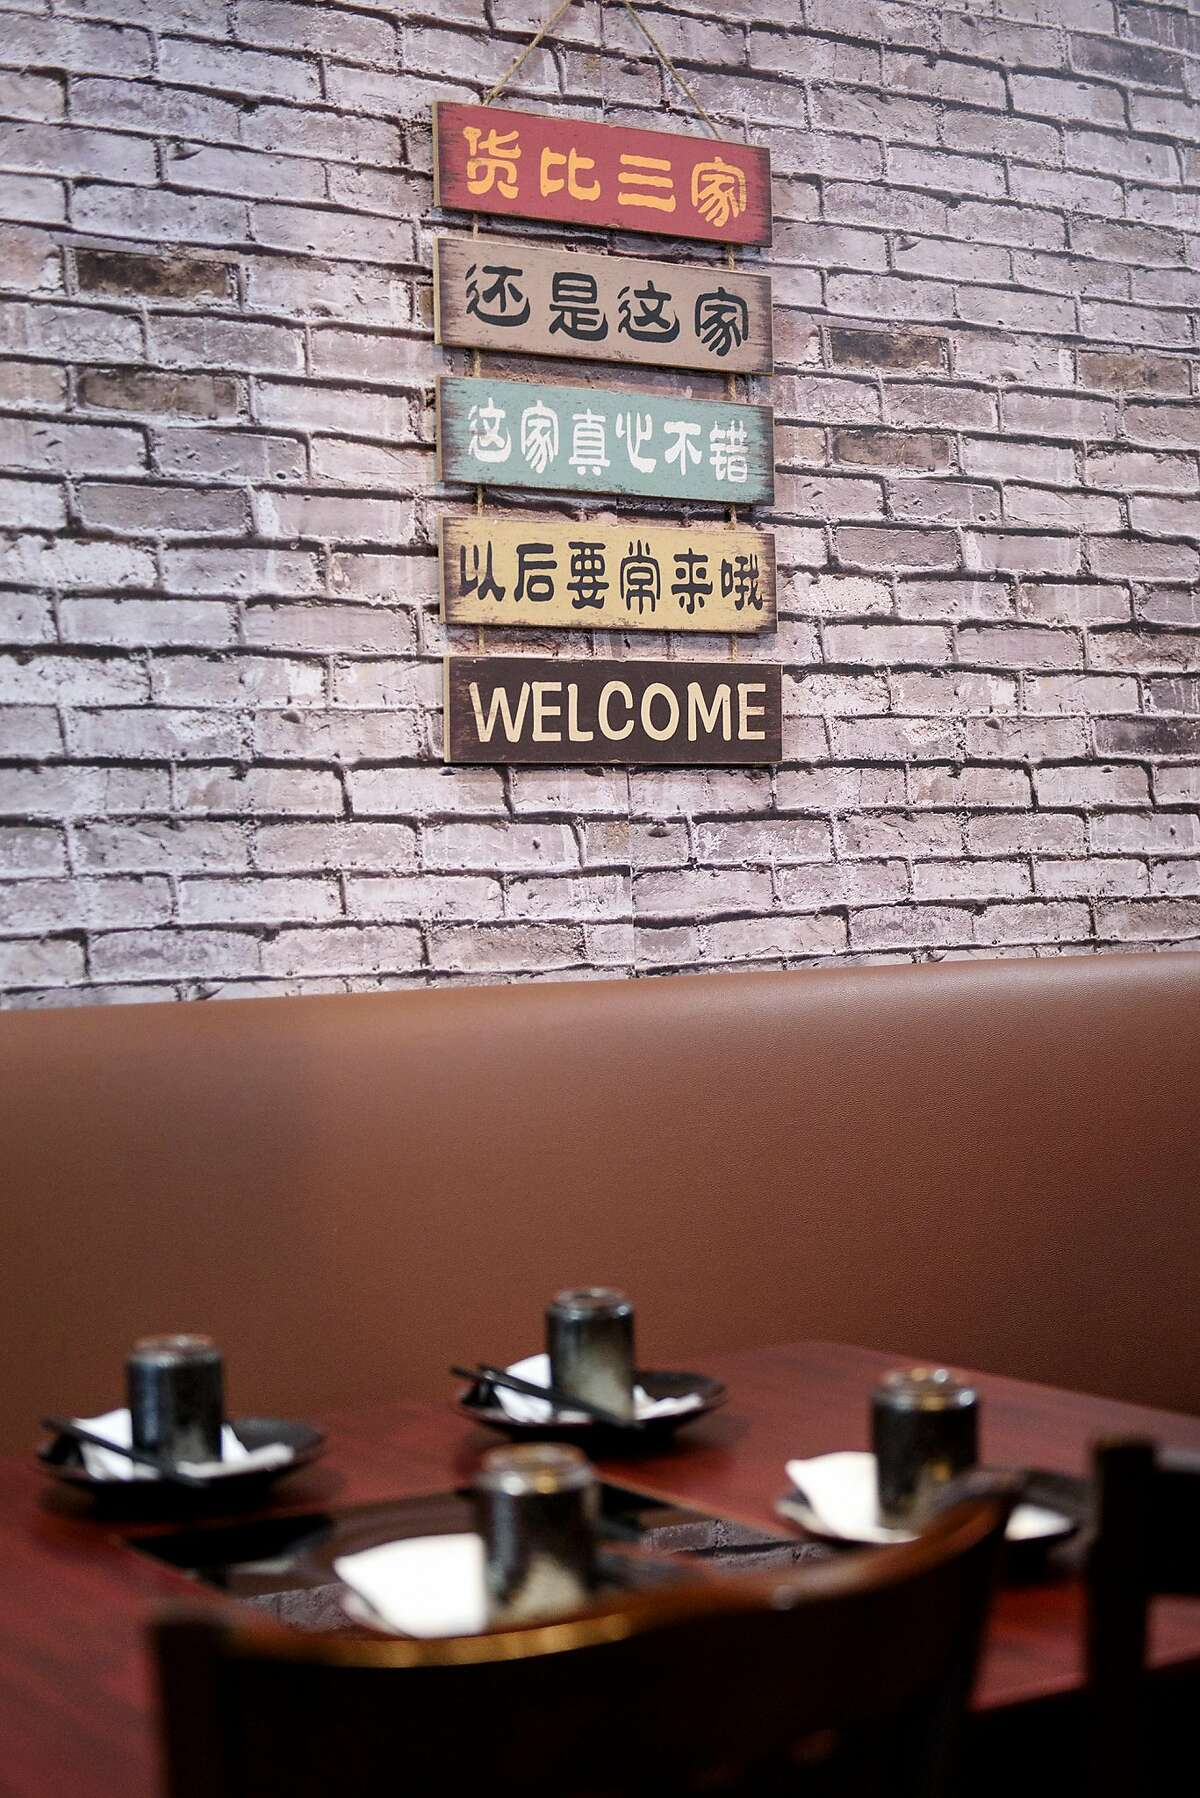 A welcome sign hangs on the wall at Woija Hunan Cuisine in Albany, Calif., on Thursday March 28, 2019.